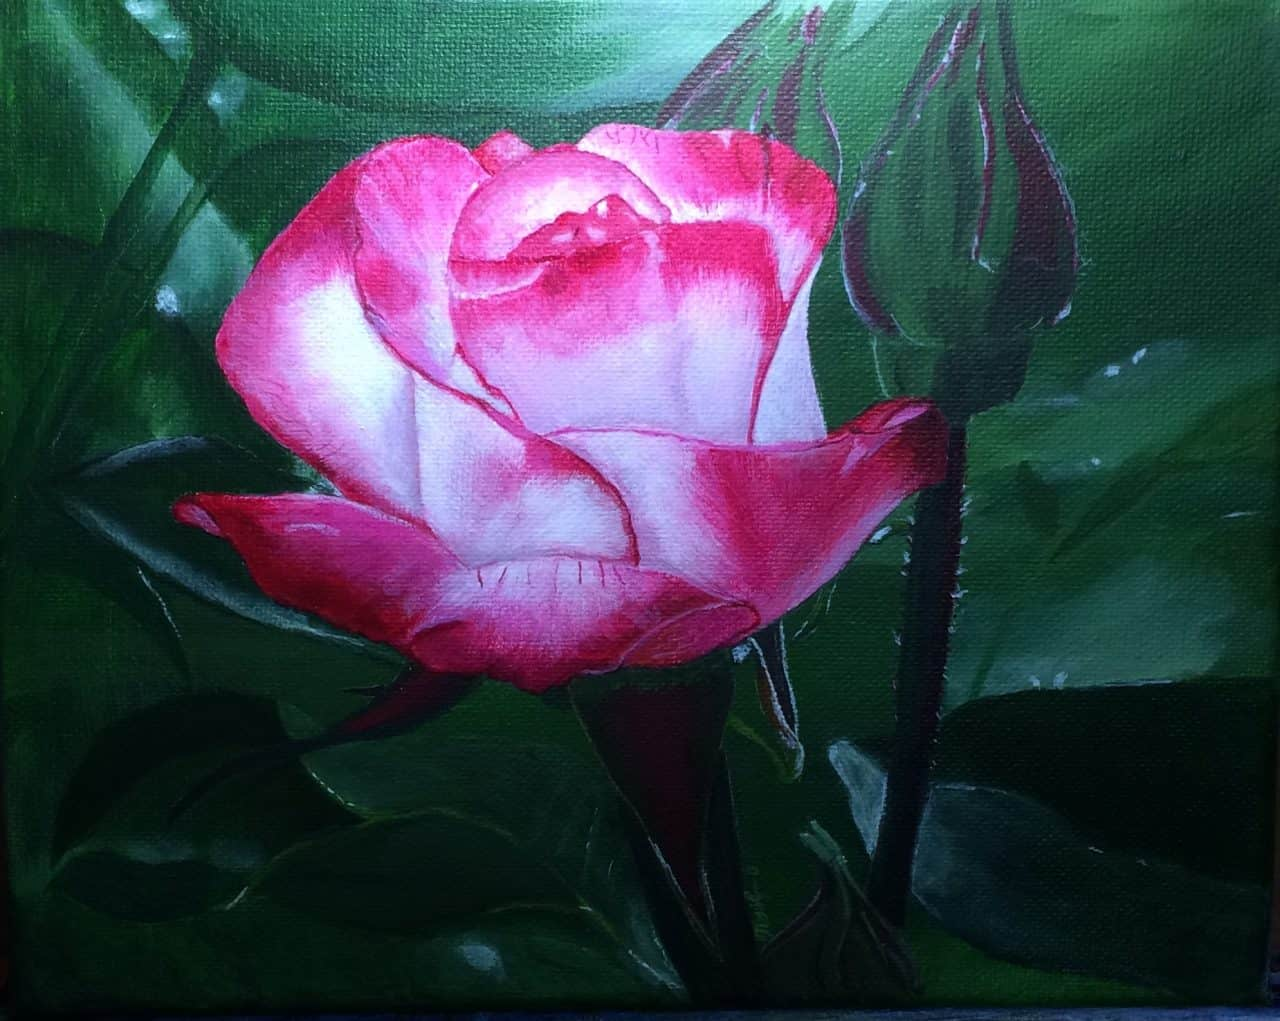 Pink and red rose on a green leafy background. Acrylic painting